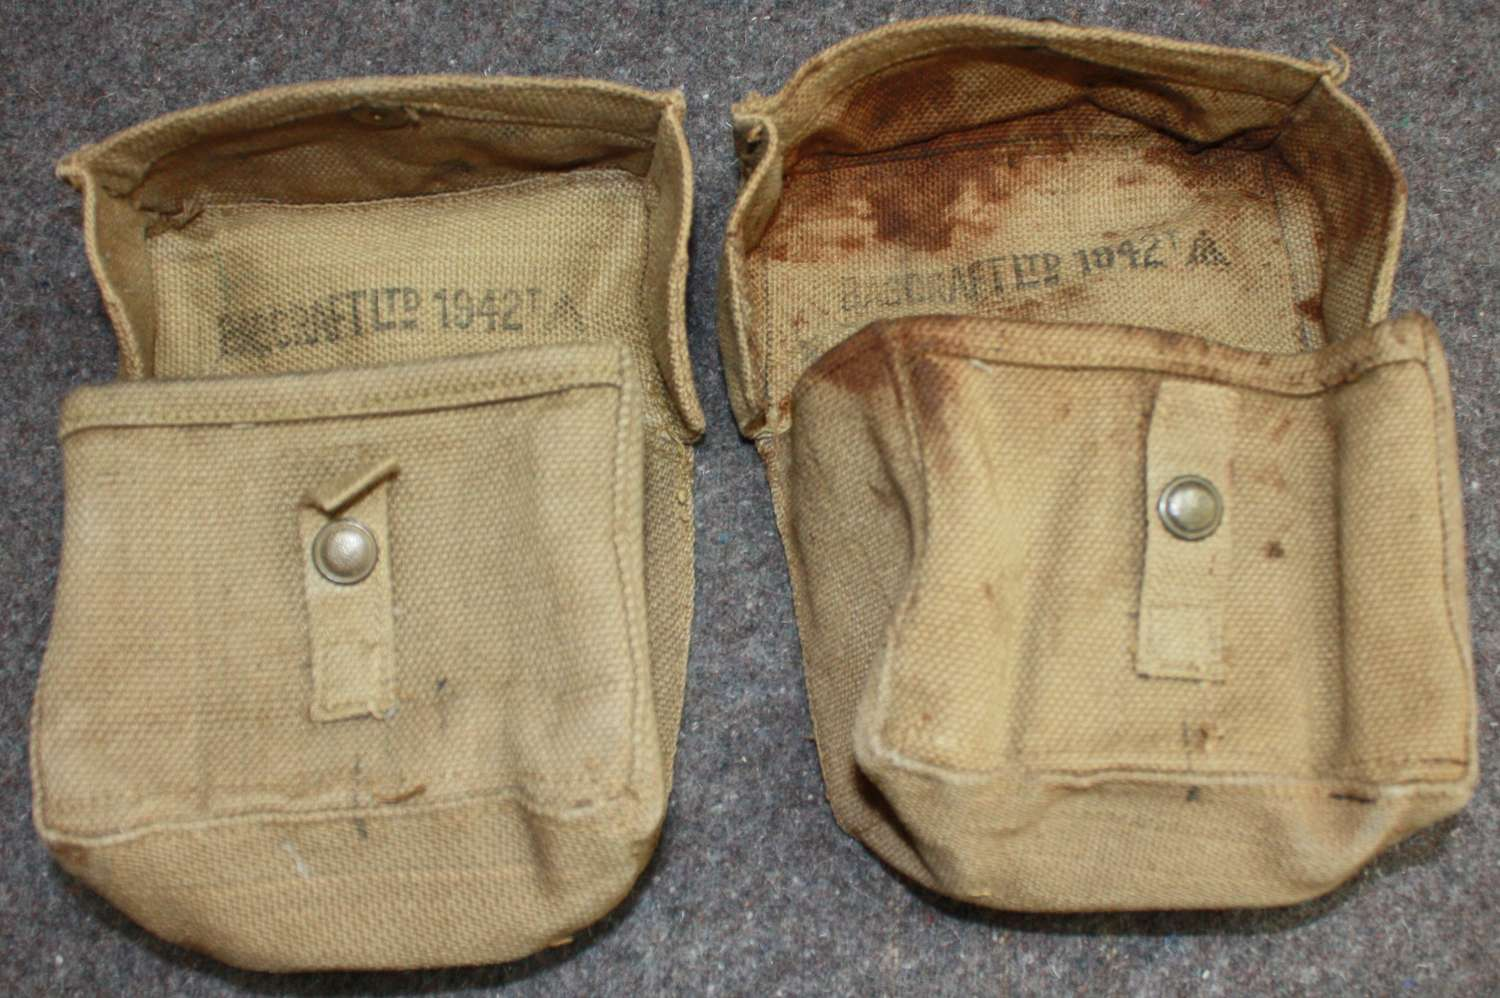 AP AIR OF THE 1942 PATTERN HOME GUARD AMMO POUCHES